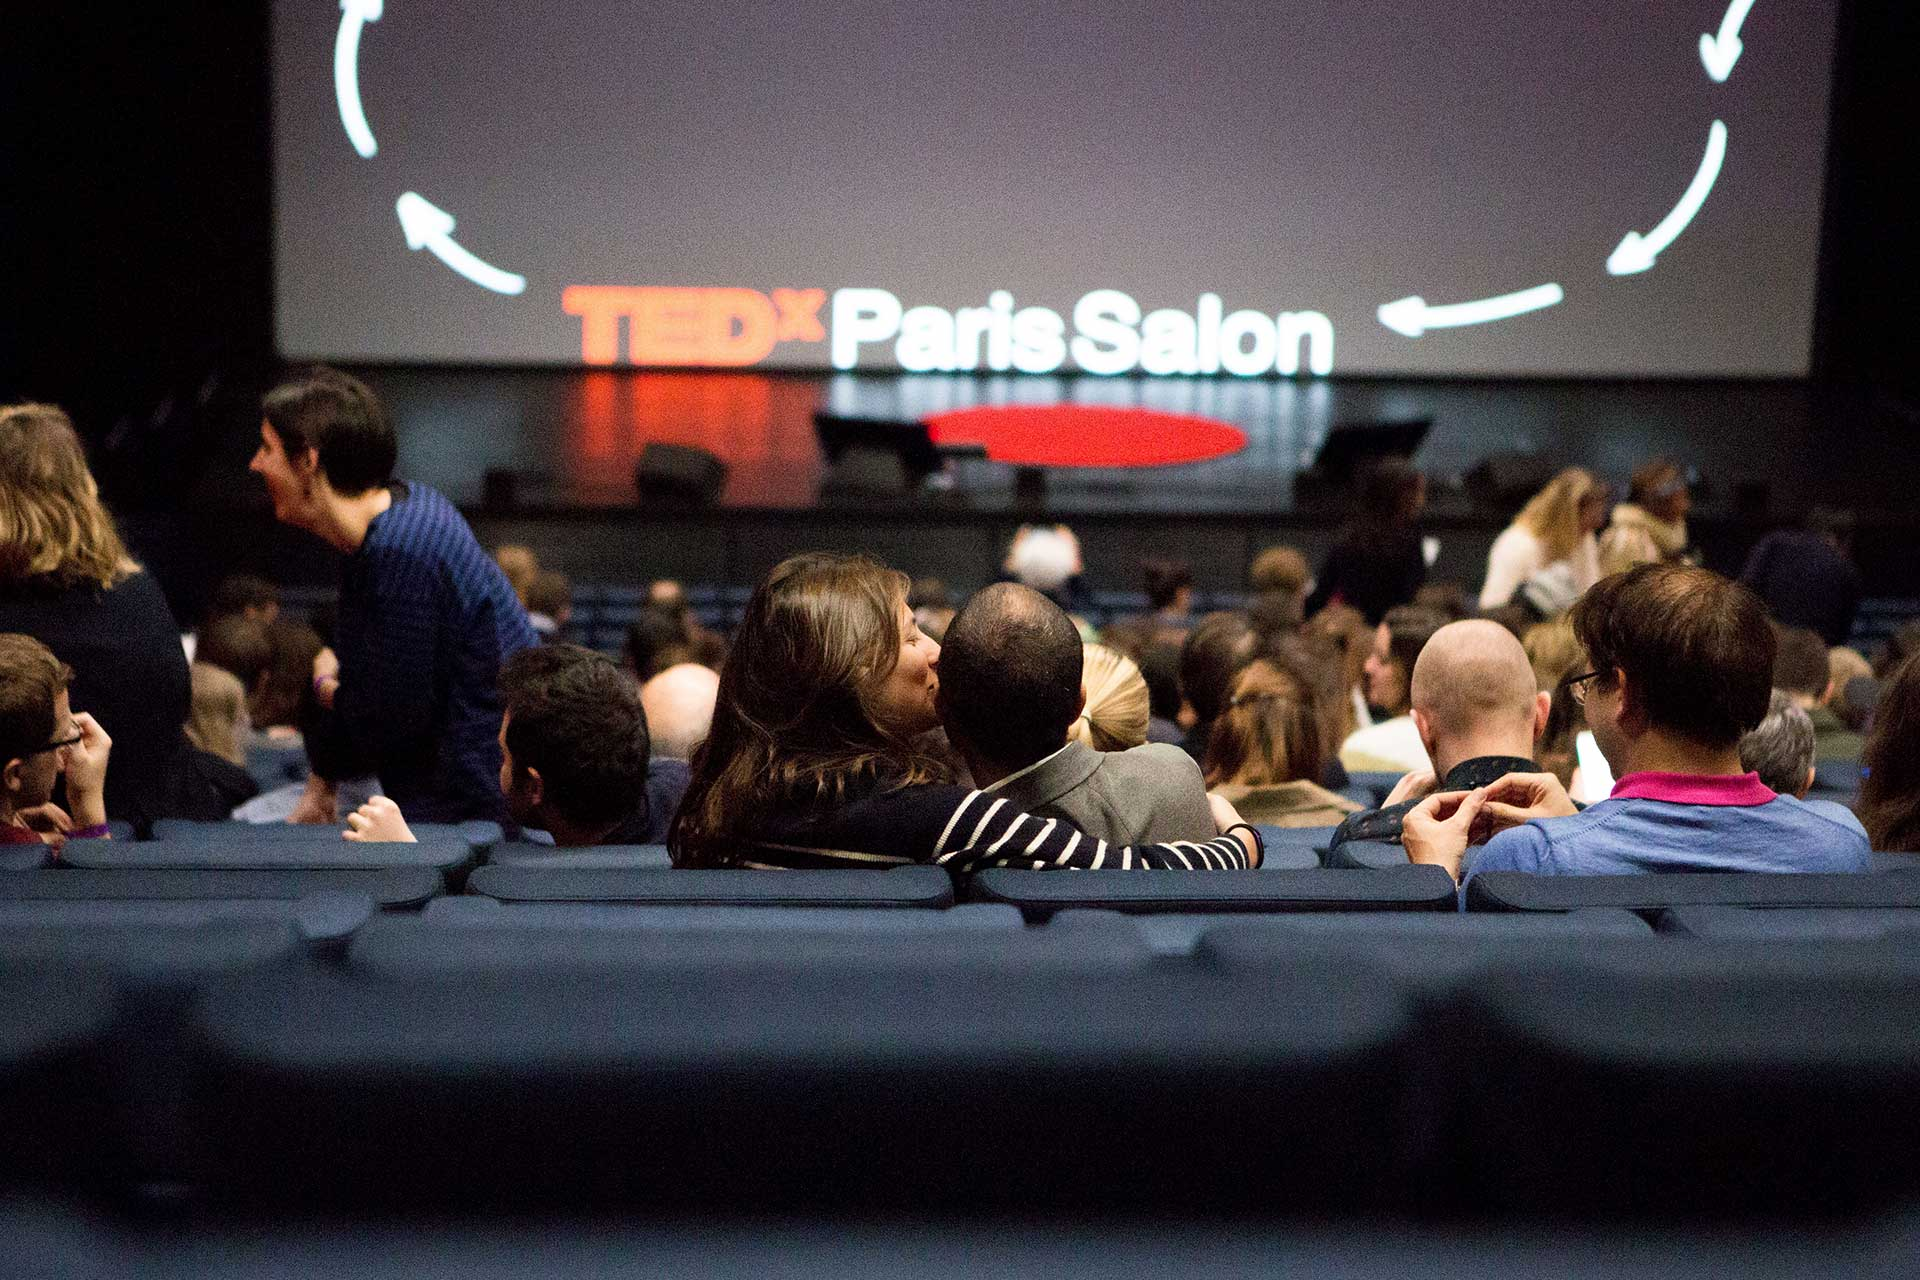 conference-TEDxParisSalon-2019-4.jpg